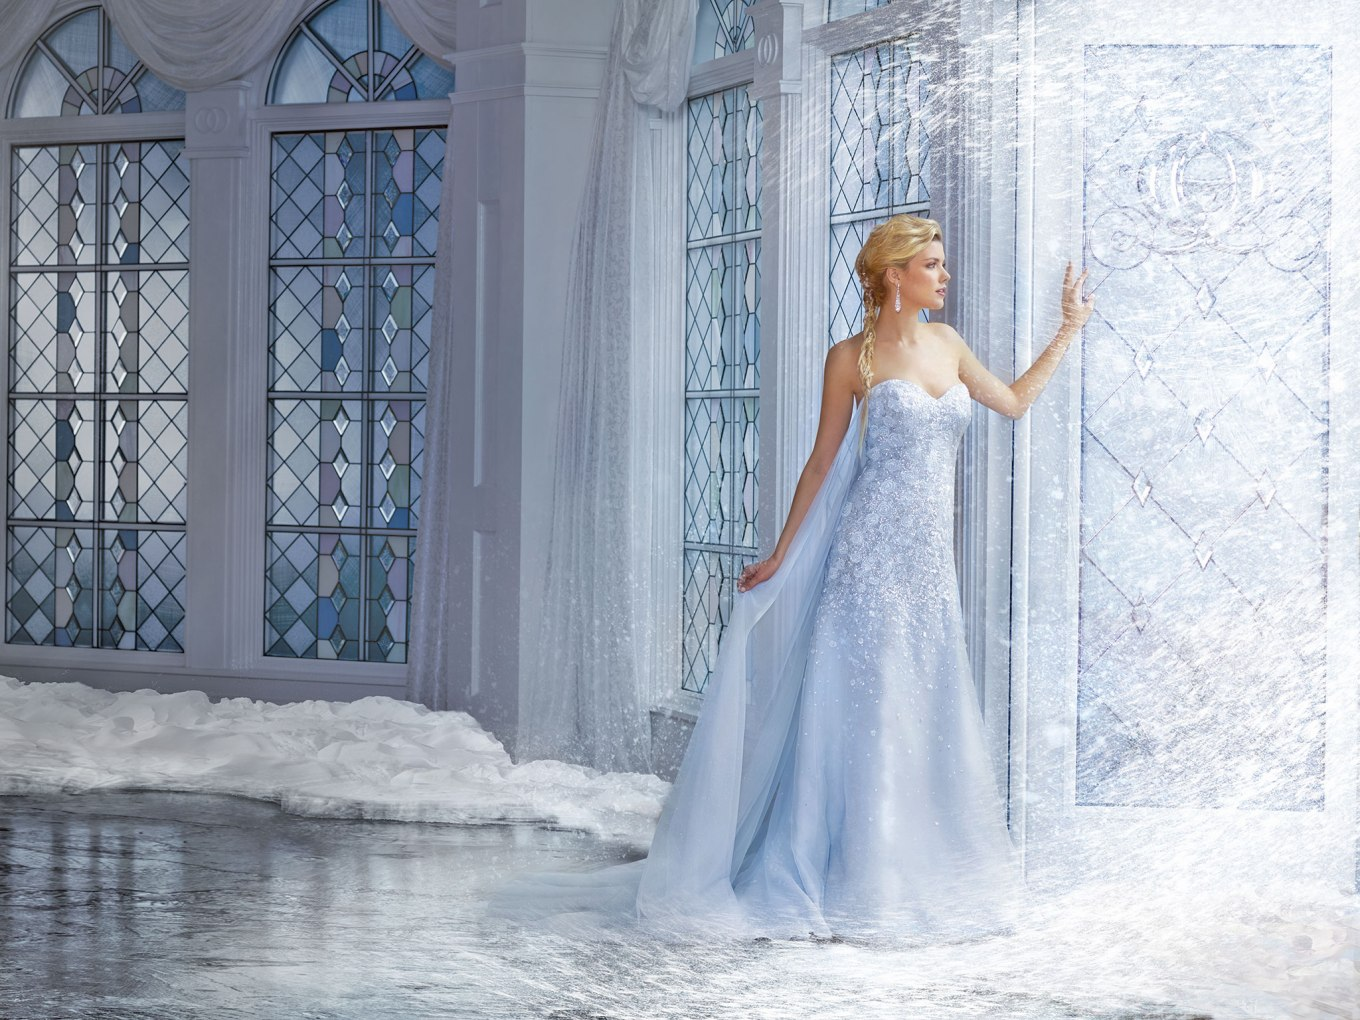 elsa-frozen-dress